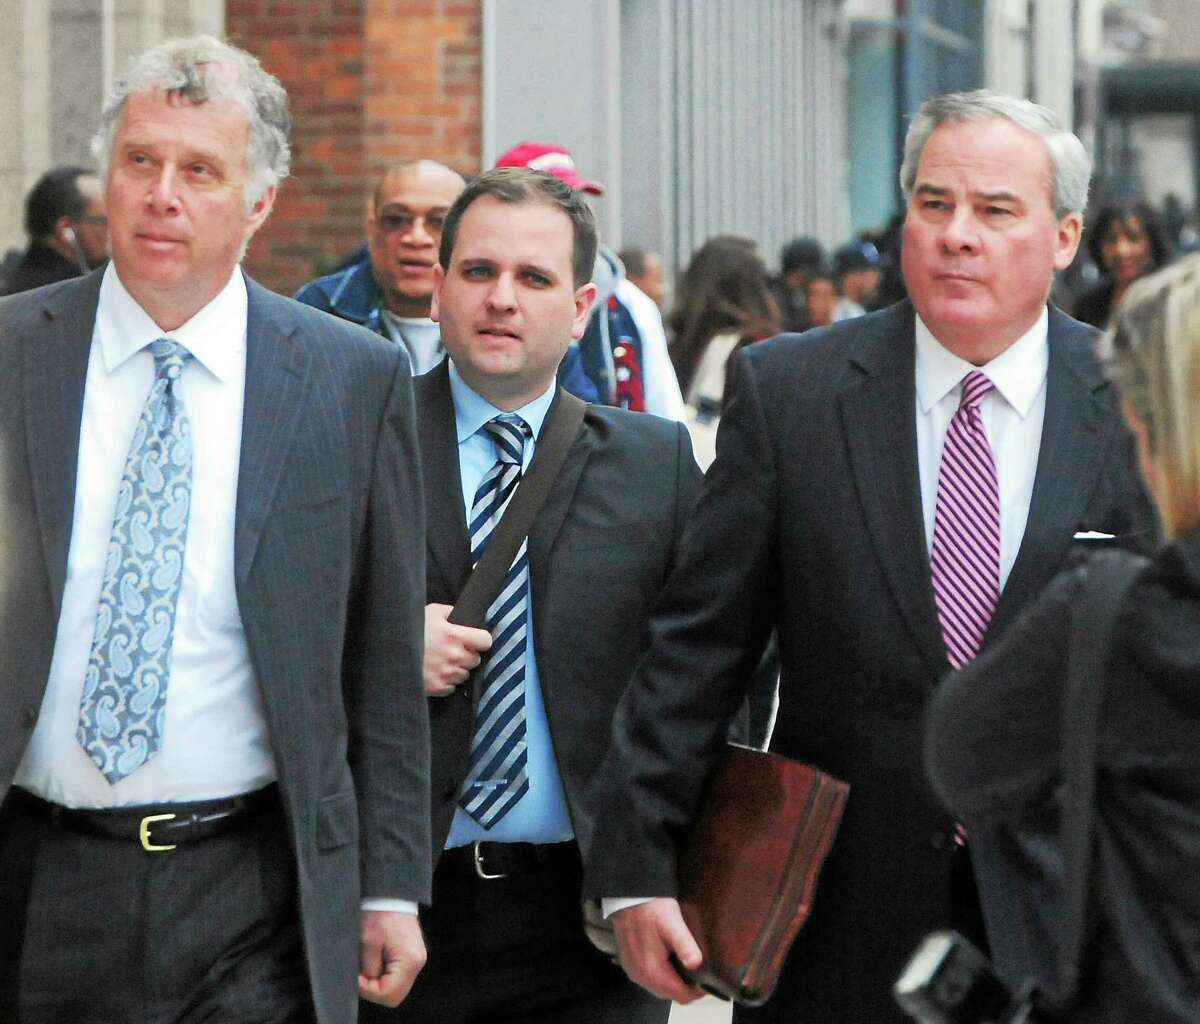 Former Connecticut Governor John G. Rowland, right, arrives with his attorney Reid Weingarten, far left, at the Federal Courthouse in New Haven Friday afternoon, April 11, 2014 to face a seven-count indictment a campaign fraud investigation in Connecticut's 5th Congressional District.